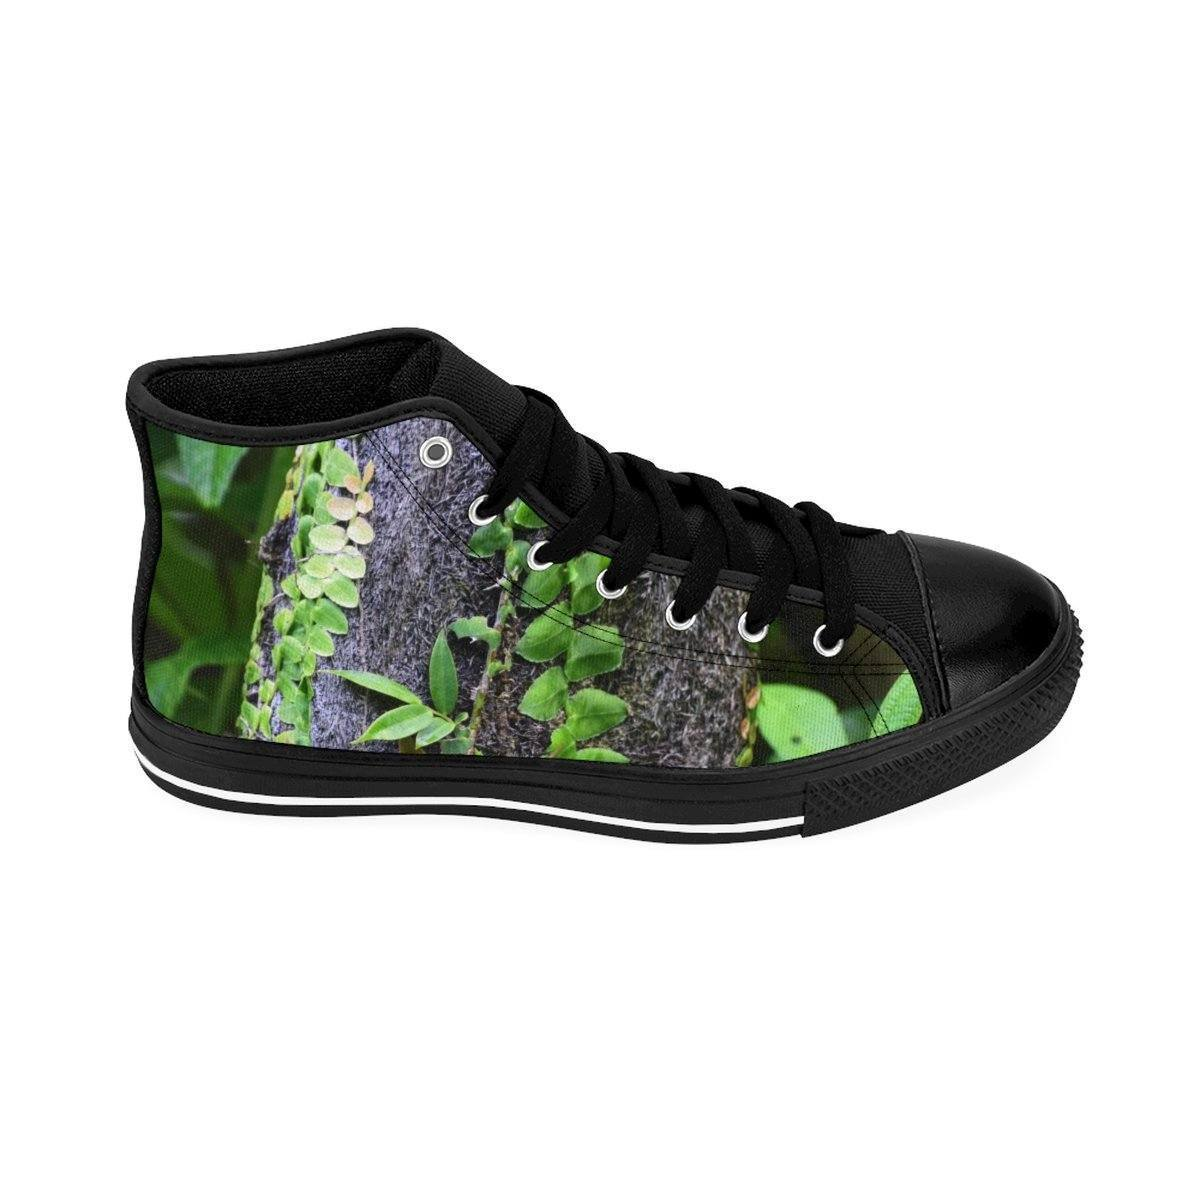 Men's High-top Sneakers - The strong trunk of the Fern Palm - El Yunque rain forest PR Shoes Printify